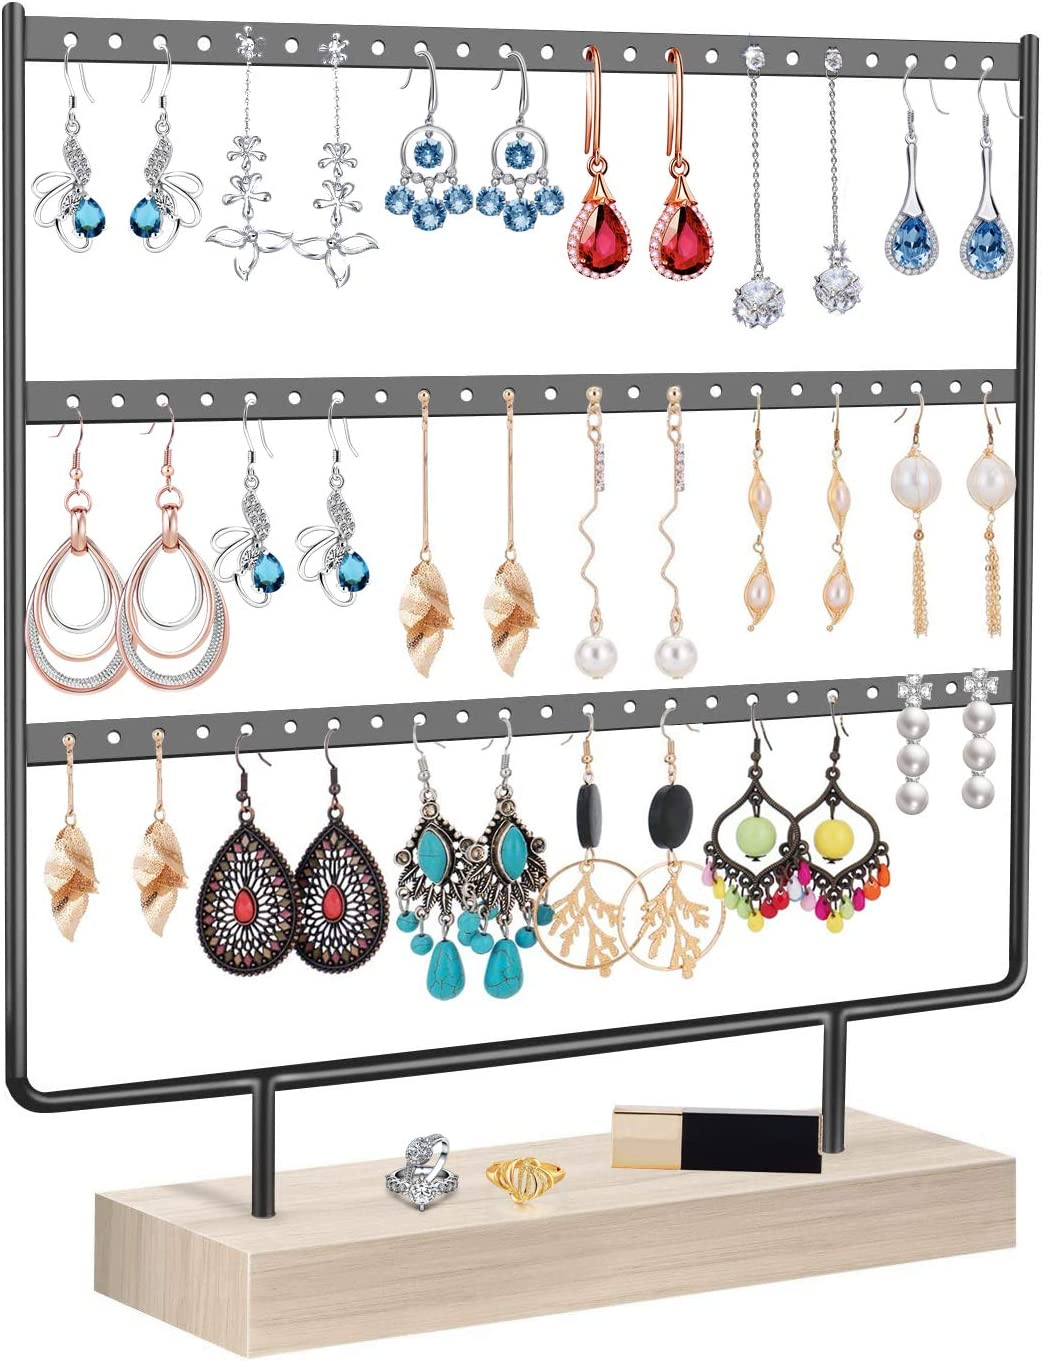 Earrings Organizer Jewelry Display Stand, 3-Tier Earring Holder Rack for Hanging Earrings, Metal and Wood Basic Large Storage Earring Jewelry Display Tree as Women Girls Gift